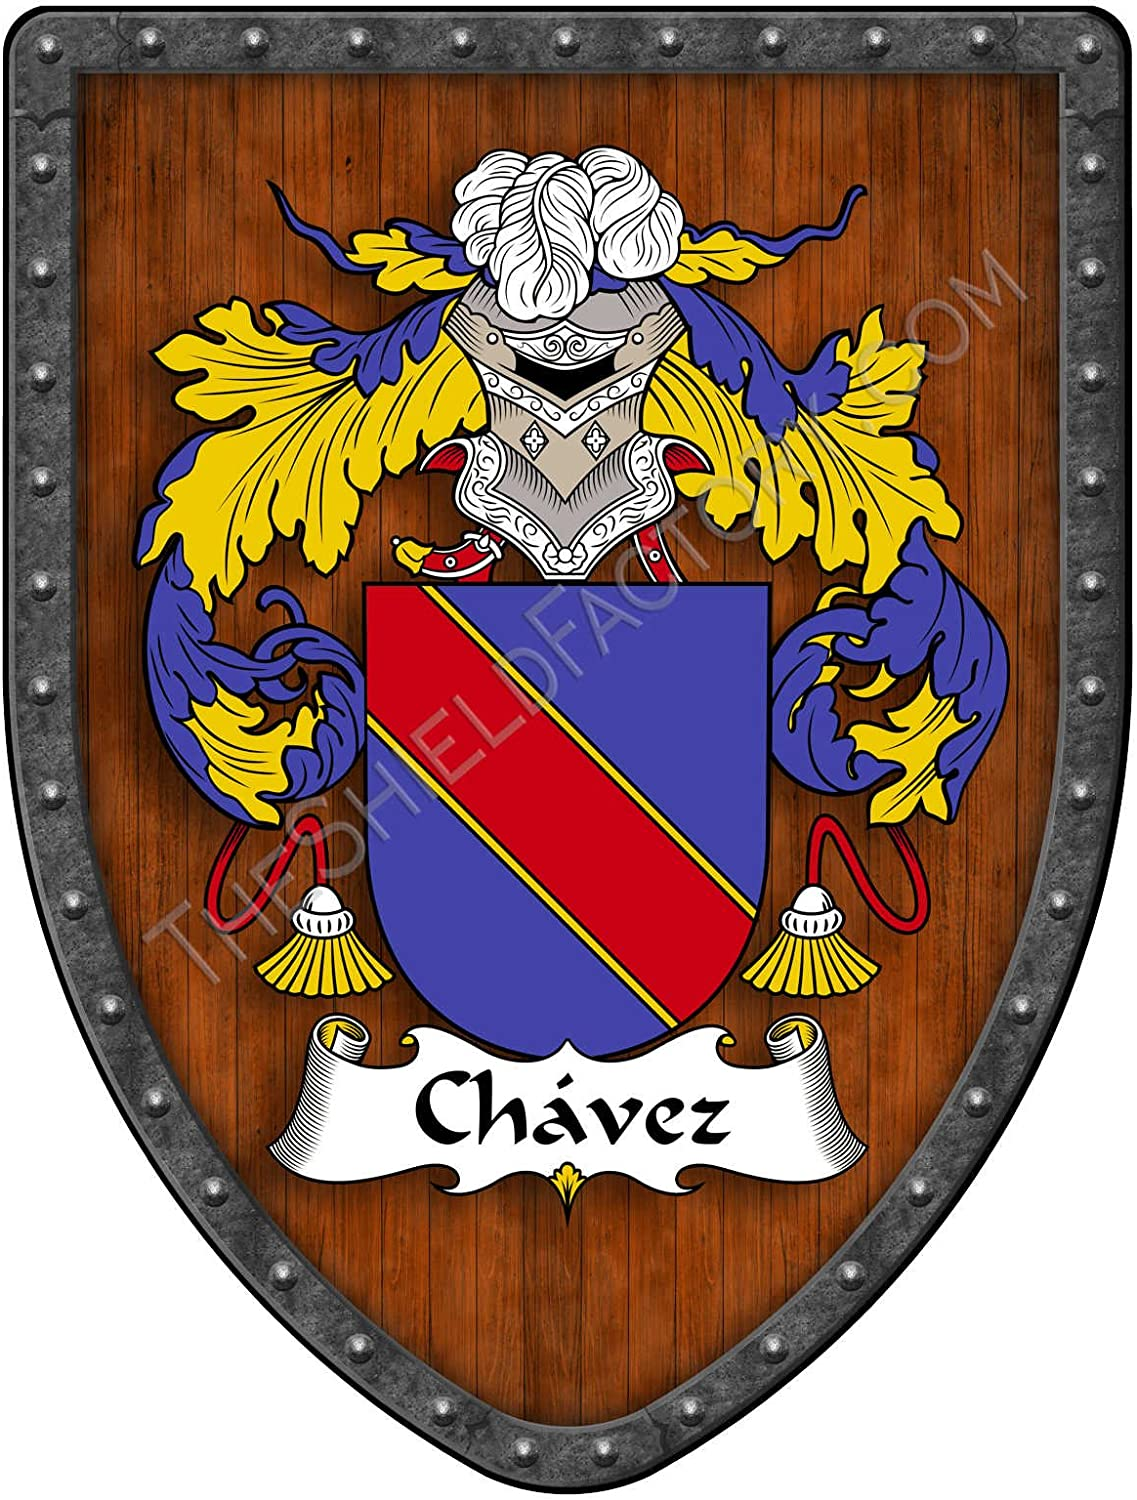 /& Mrs CHAVEZ Mexican Flag Personalized Shield Metal Sign 211110009021 Mr